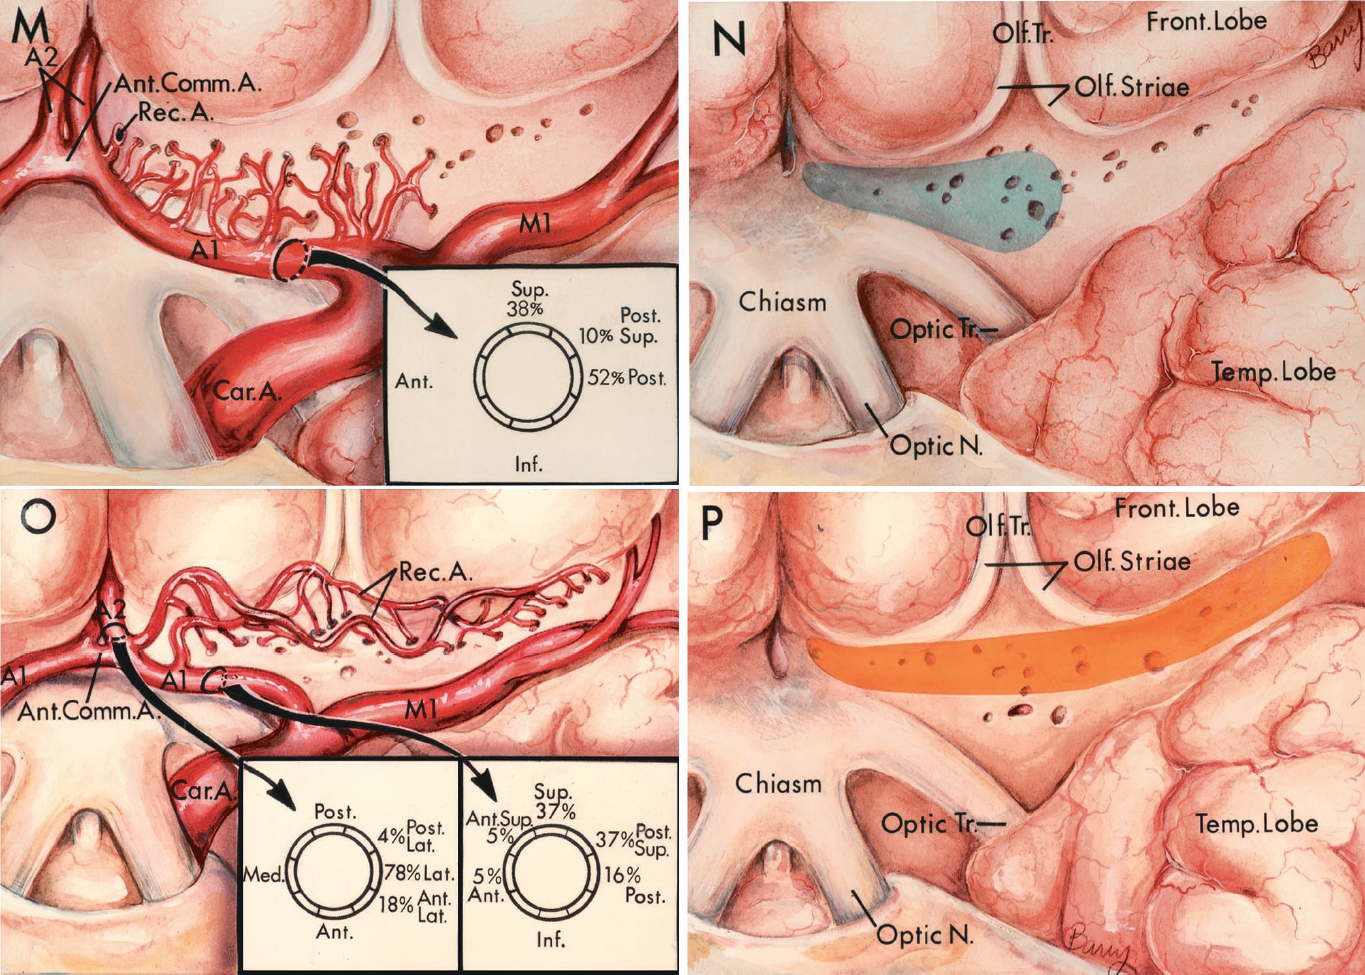 FIGURE 2.30 M-P.M and N, perforating branches of the A1 segment of the anterior cerebral artery. M, the A1 branches arise below the medial part of the anterior perforated substance and pass superior. The lateral half of the A1 segment is a richer site of perforating branches than the medial half. Inset: the branches arise from the posterior, superior, or posterosuperior surface of the A1 segment. N, the A1 branches enter the narrow band of anterior perforated substance extending above the optic chiasm. They enter predominantly the posterior and middle zone of the medial territory of the anterior perforated substance. O and P, recurrent artery. O, as many as four recurrent arteries may arise from the anterior cerebral artery, either proximal to or near the level of the AComA. They pass laterally above the carotid bifurcation and give branches to the full mediolateral extent of the anterior perforated substance. They may wander forward on the posterior part of the orbital surface of the frontal lobe. Inset (lower right): Site of origin of the recurrent arteries. Left inset: Recurrent artery origins near the junction of the A1 and A2 segments. The cross section of the artery at this level is oriented in a transverse plane. These branches arise predominantly from the lateral side of the vessel. Right inset: Site of origin of recurrent arteries arising from the A1 segments. The cross section of the artery at this level has an orientation in the sagittal plane. The branches arise predominantly from the superior or posterosuperior surface. P, the branches of the recurrent artery enter predominantly the anterior half of the anterior perforated substance along its full mediolateral extent, from the interhemispheric fissure to the limen insulae. A., arteries, artery; A.C.A., anterior cerebral artery; Ant., anterior; Car., carotid; Chor., choroidal; Comm., communicating; Fiss., fissure; Front., frontal; Gyr., gyrus; Inf., inferior; Int., intermediate; Interhem., interhemispher